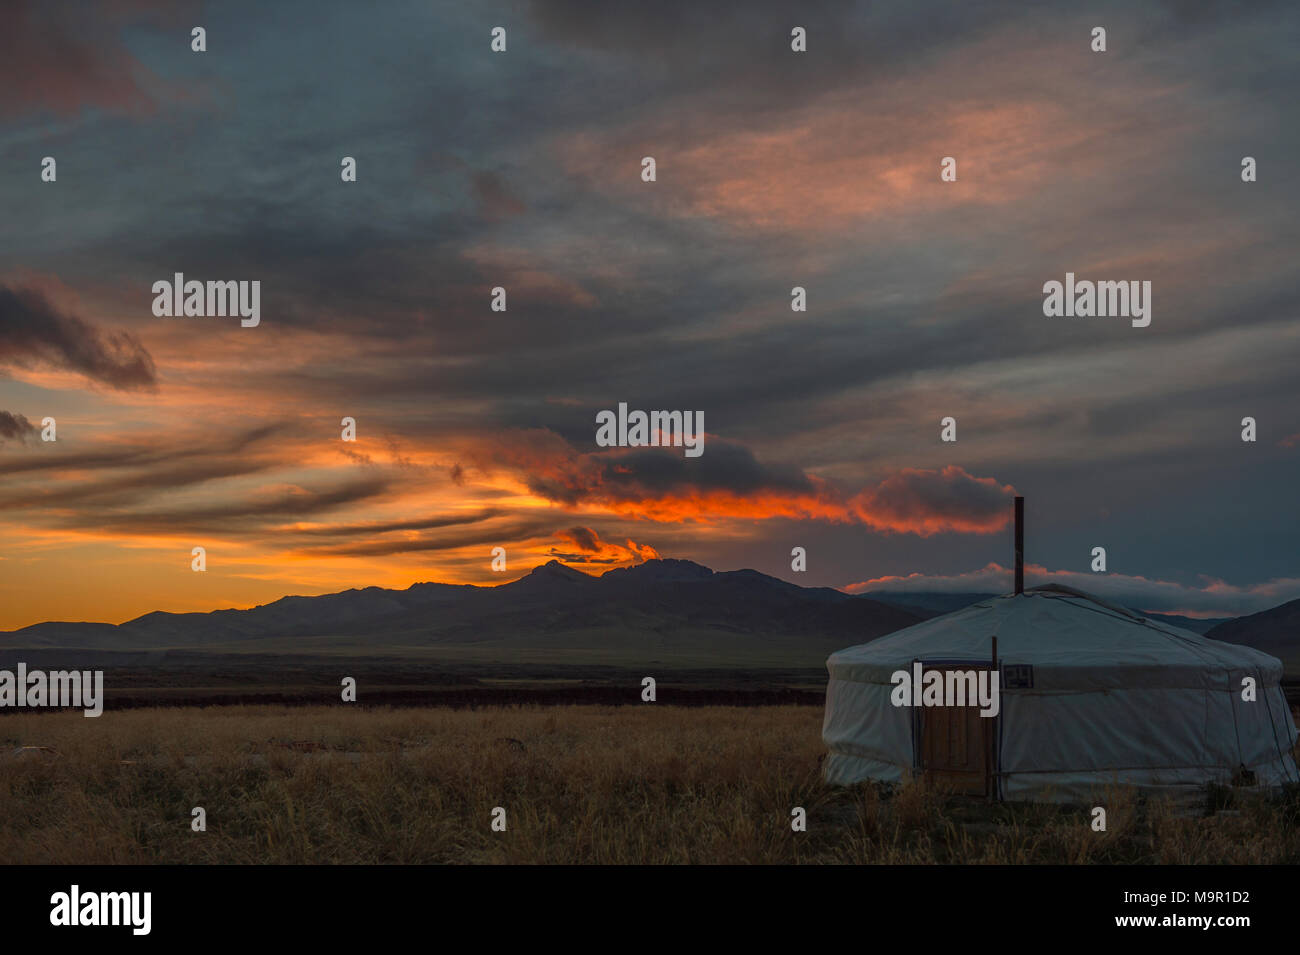 Yurt under dramatical sunset, Mongolia - Stock Image